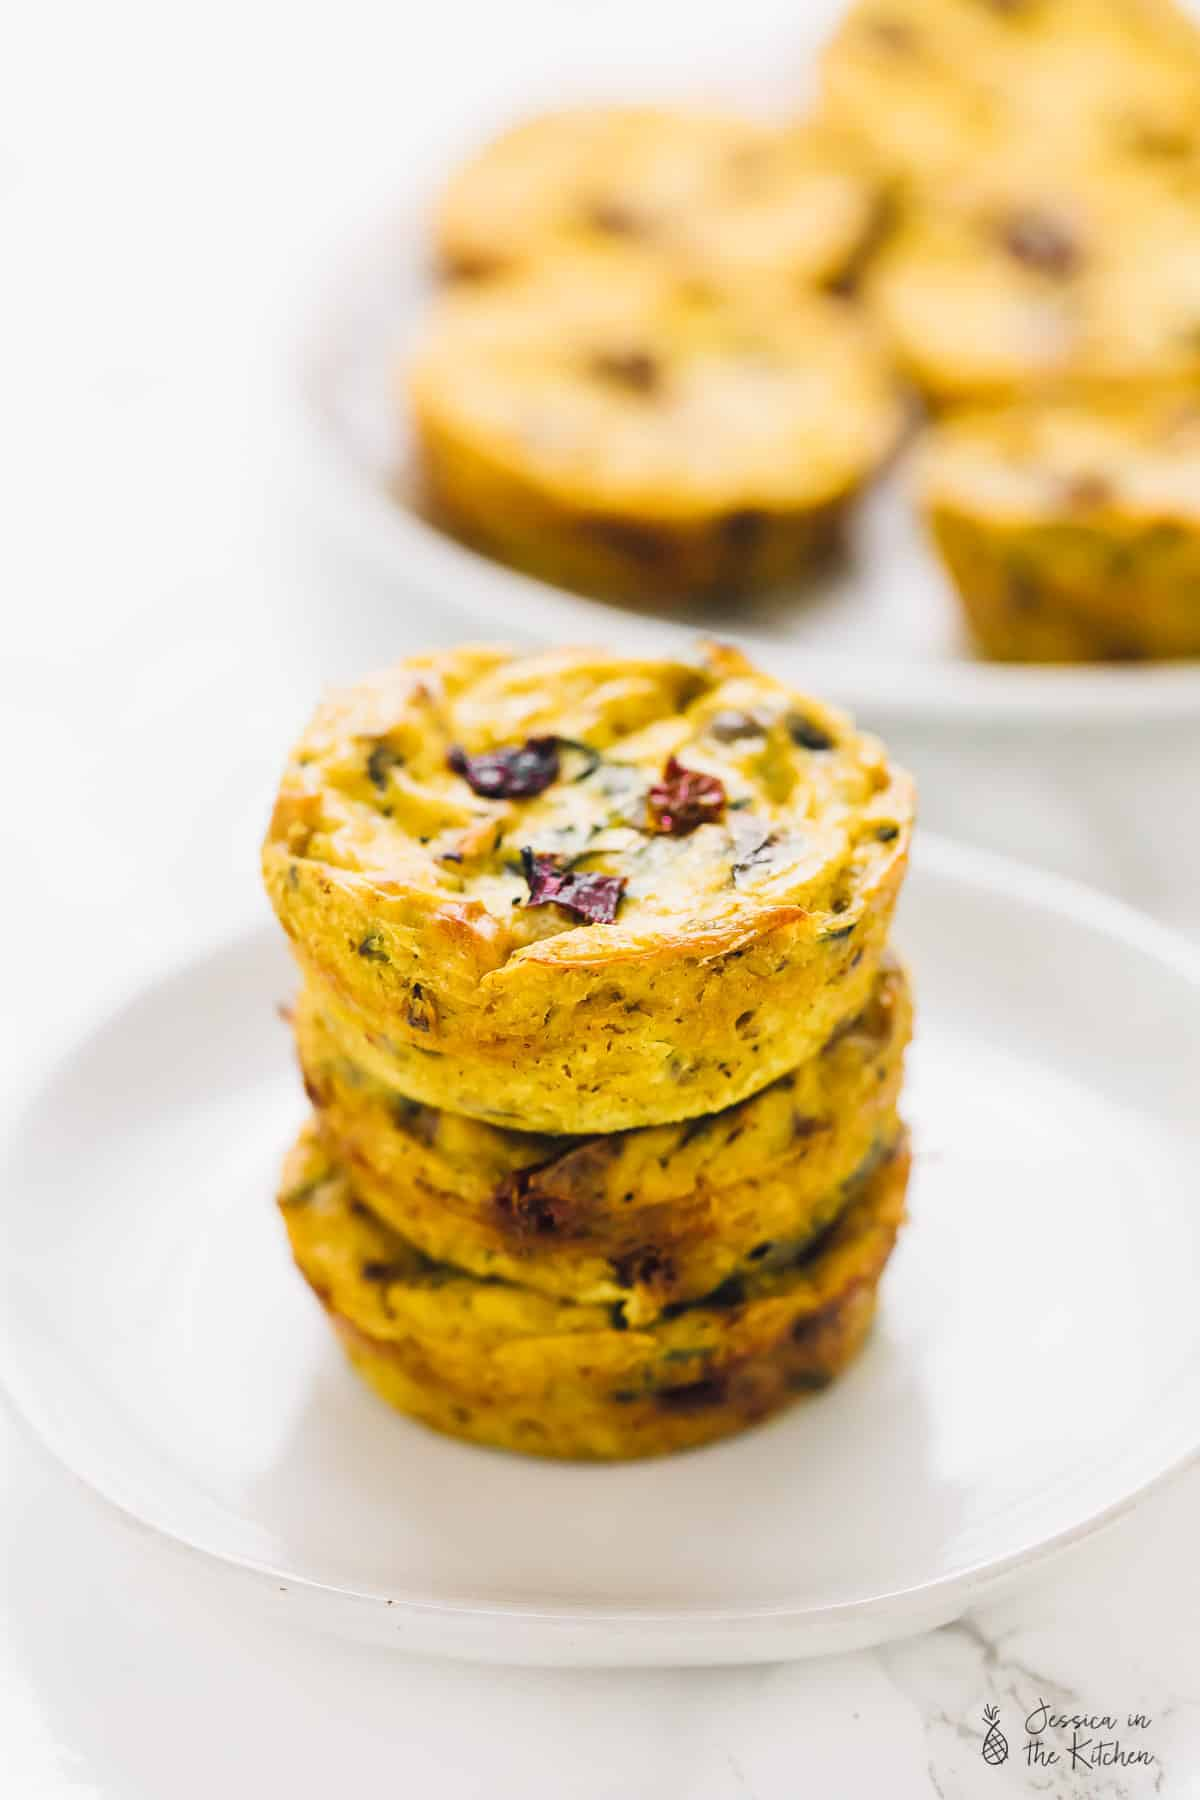 Three vegan quiche muffins stacked on a plate.